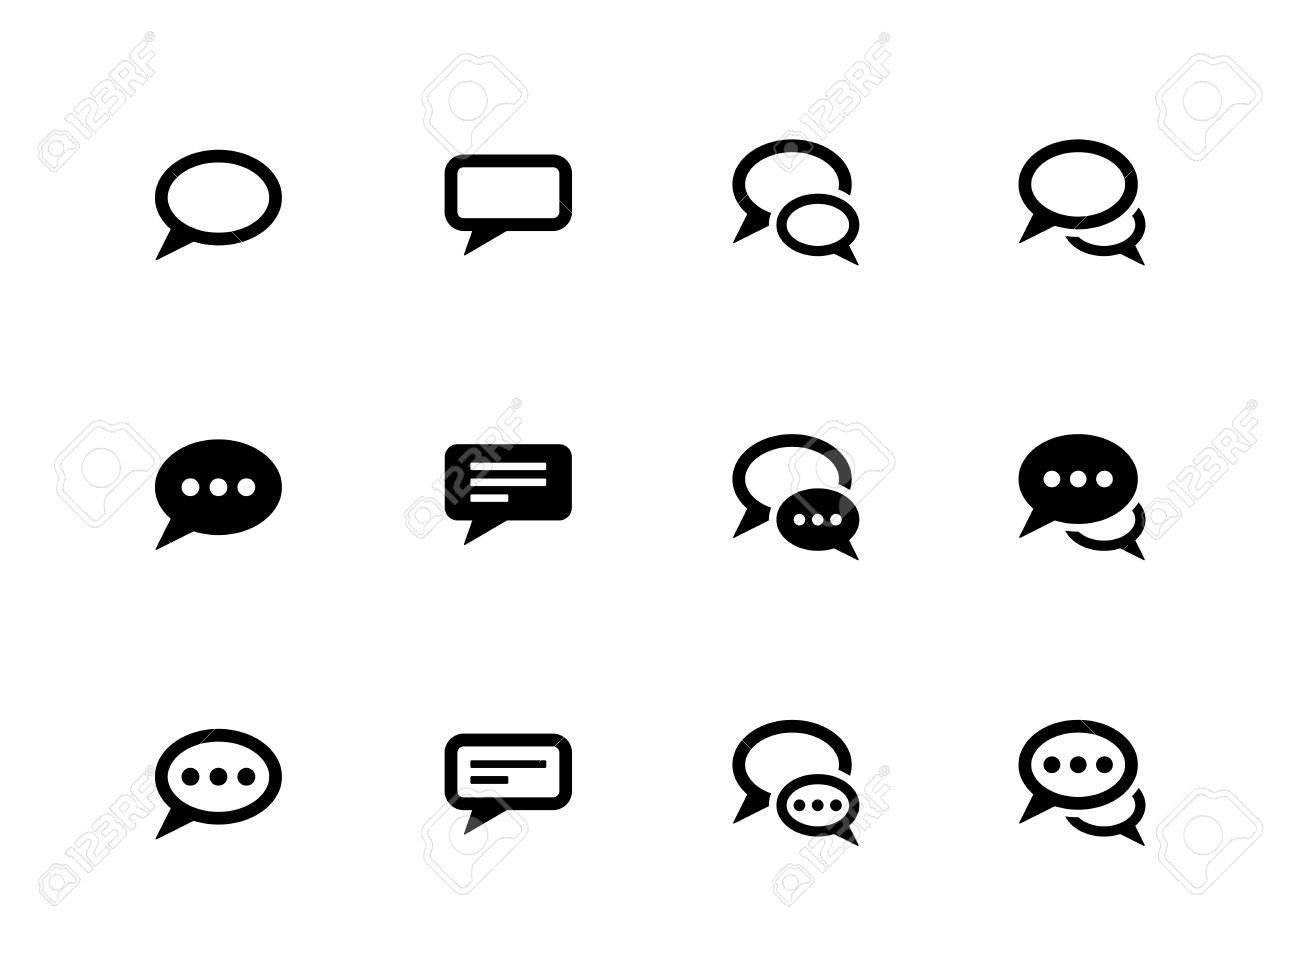 Speech bubble icons on white background. Vector illustration. Stock Vector - 21594399